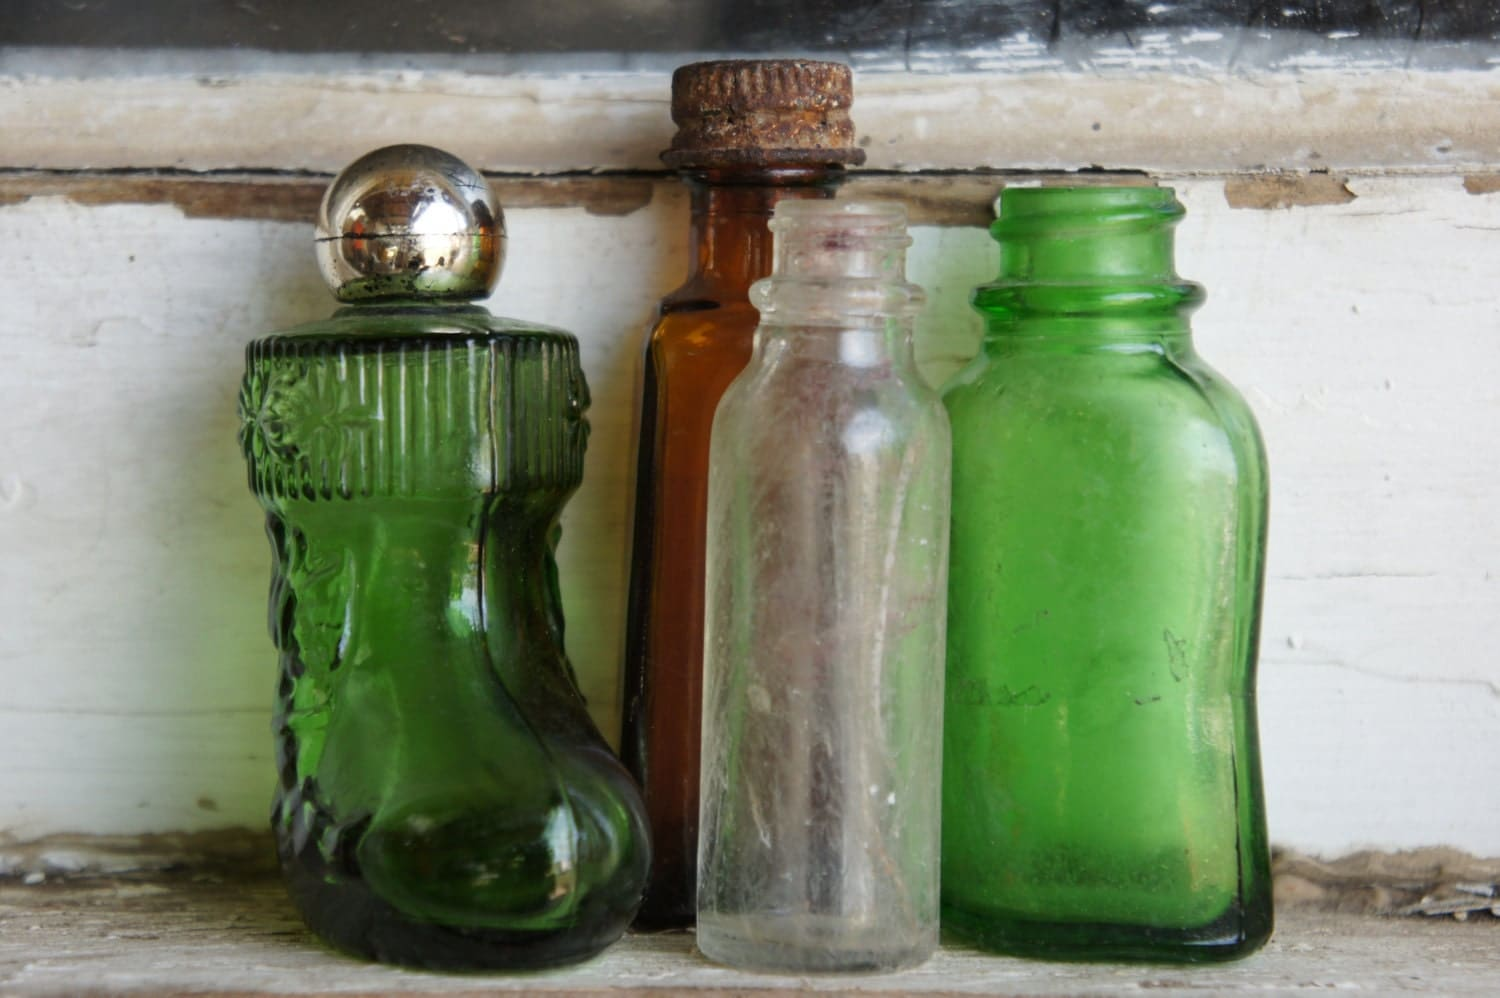 Lot of 4 Decorative Vintage Bottles in Great Condition  Green Glass  Amber Glass